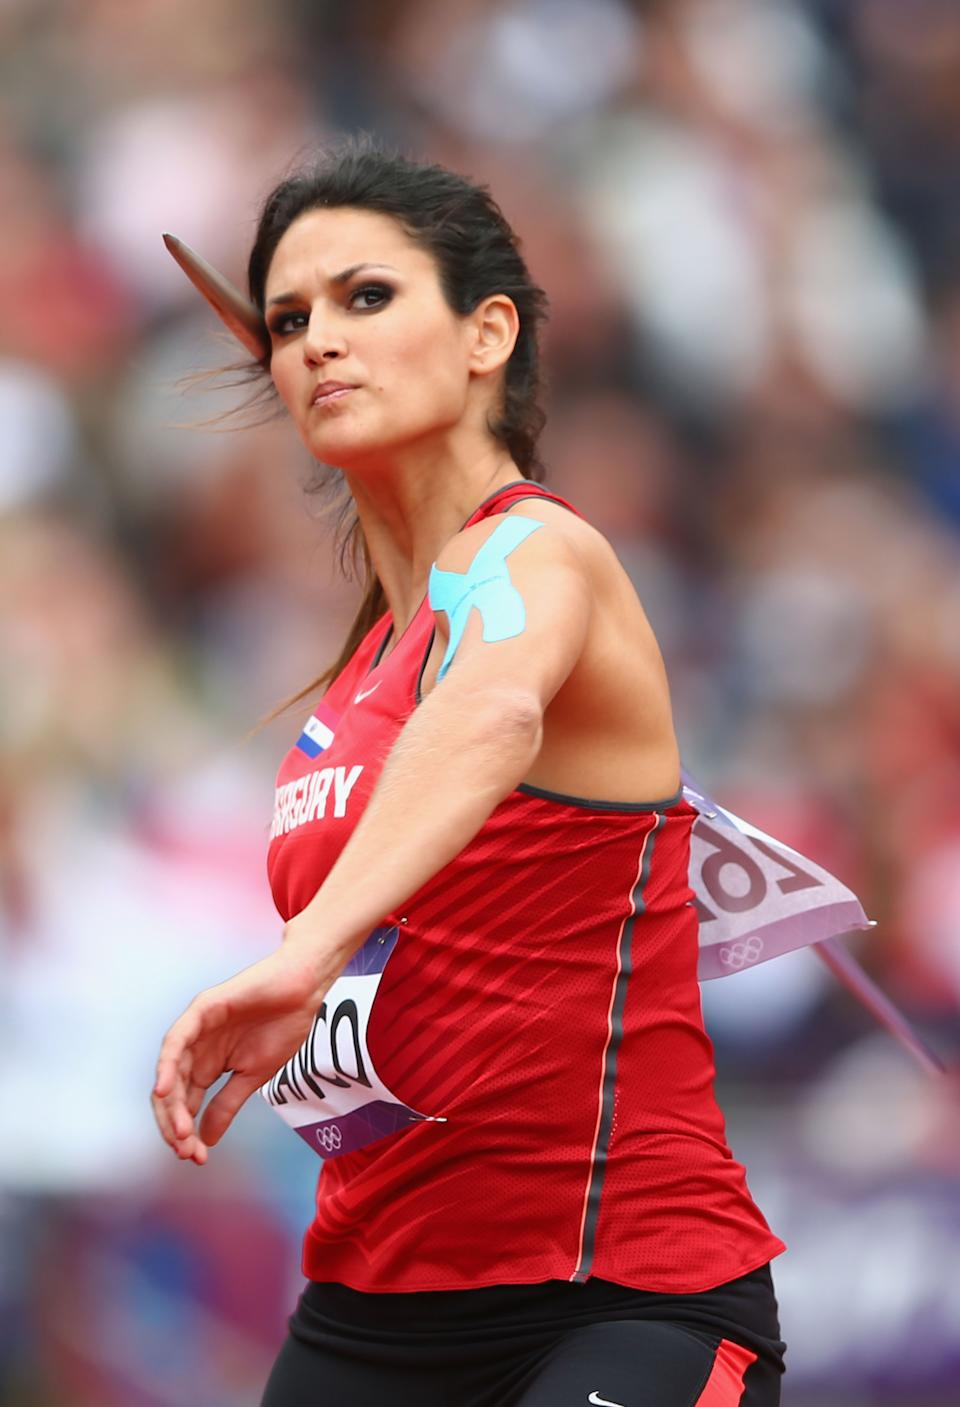 LONDON, ENGLAND - AUGUST 07: Leryn Franco of Paraguay competes in the Women's Javelin Throw Qualification on Day 11 of the London 2012 Olympic Games at Olympic Stadium on August 7, 2012 in London, England. (Photo by Michael Steele/Getty Images)